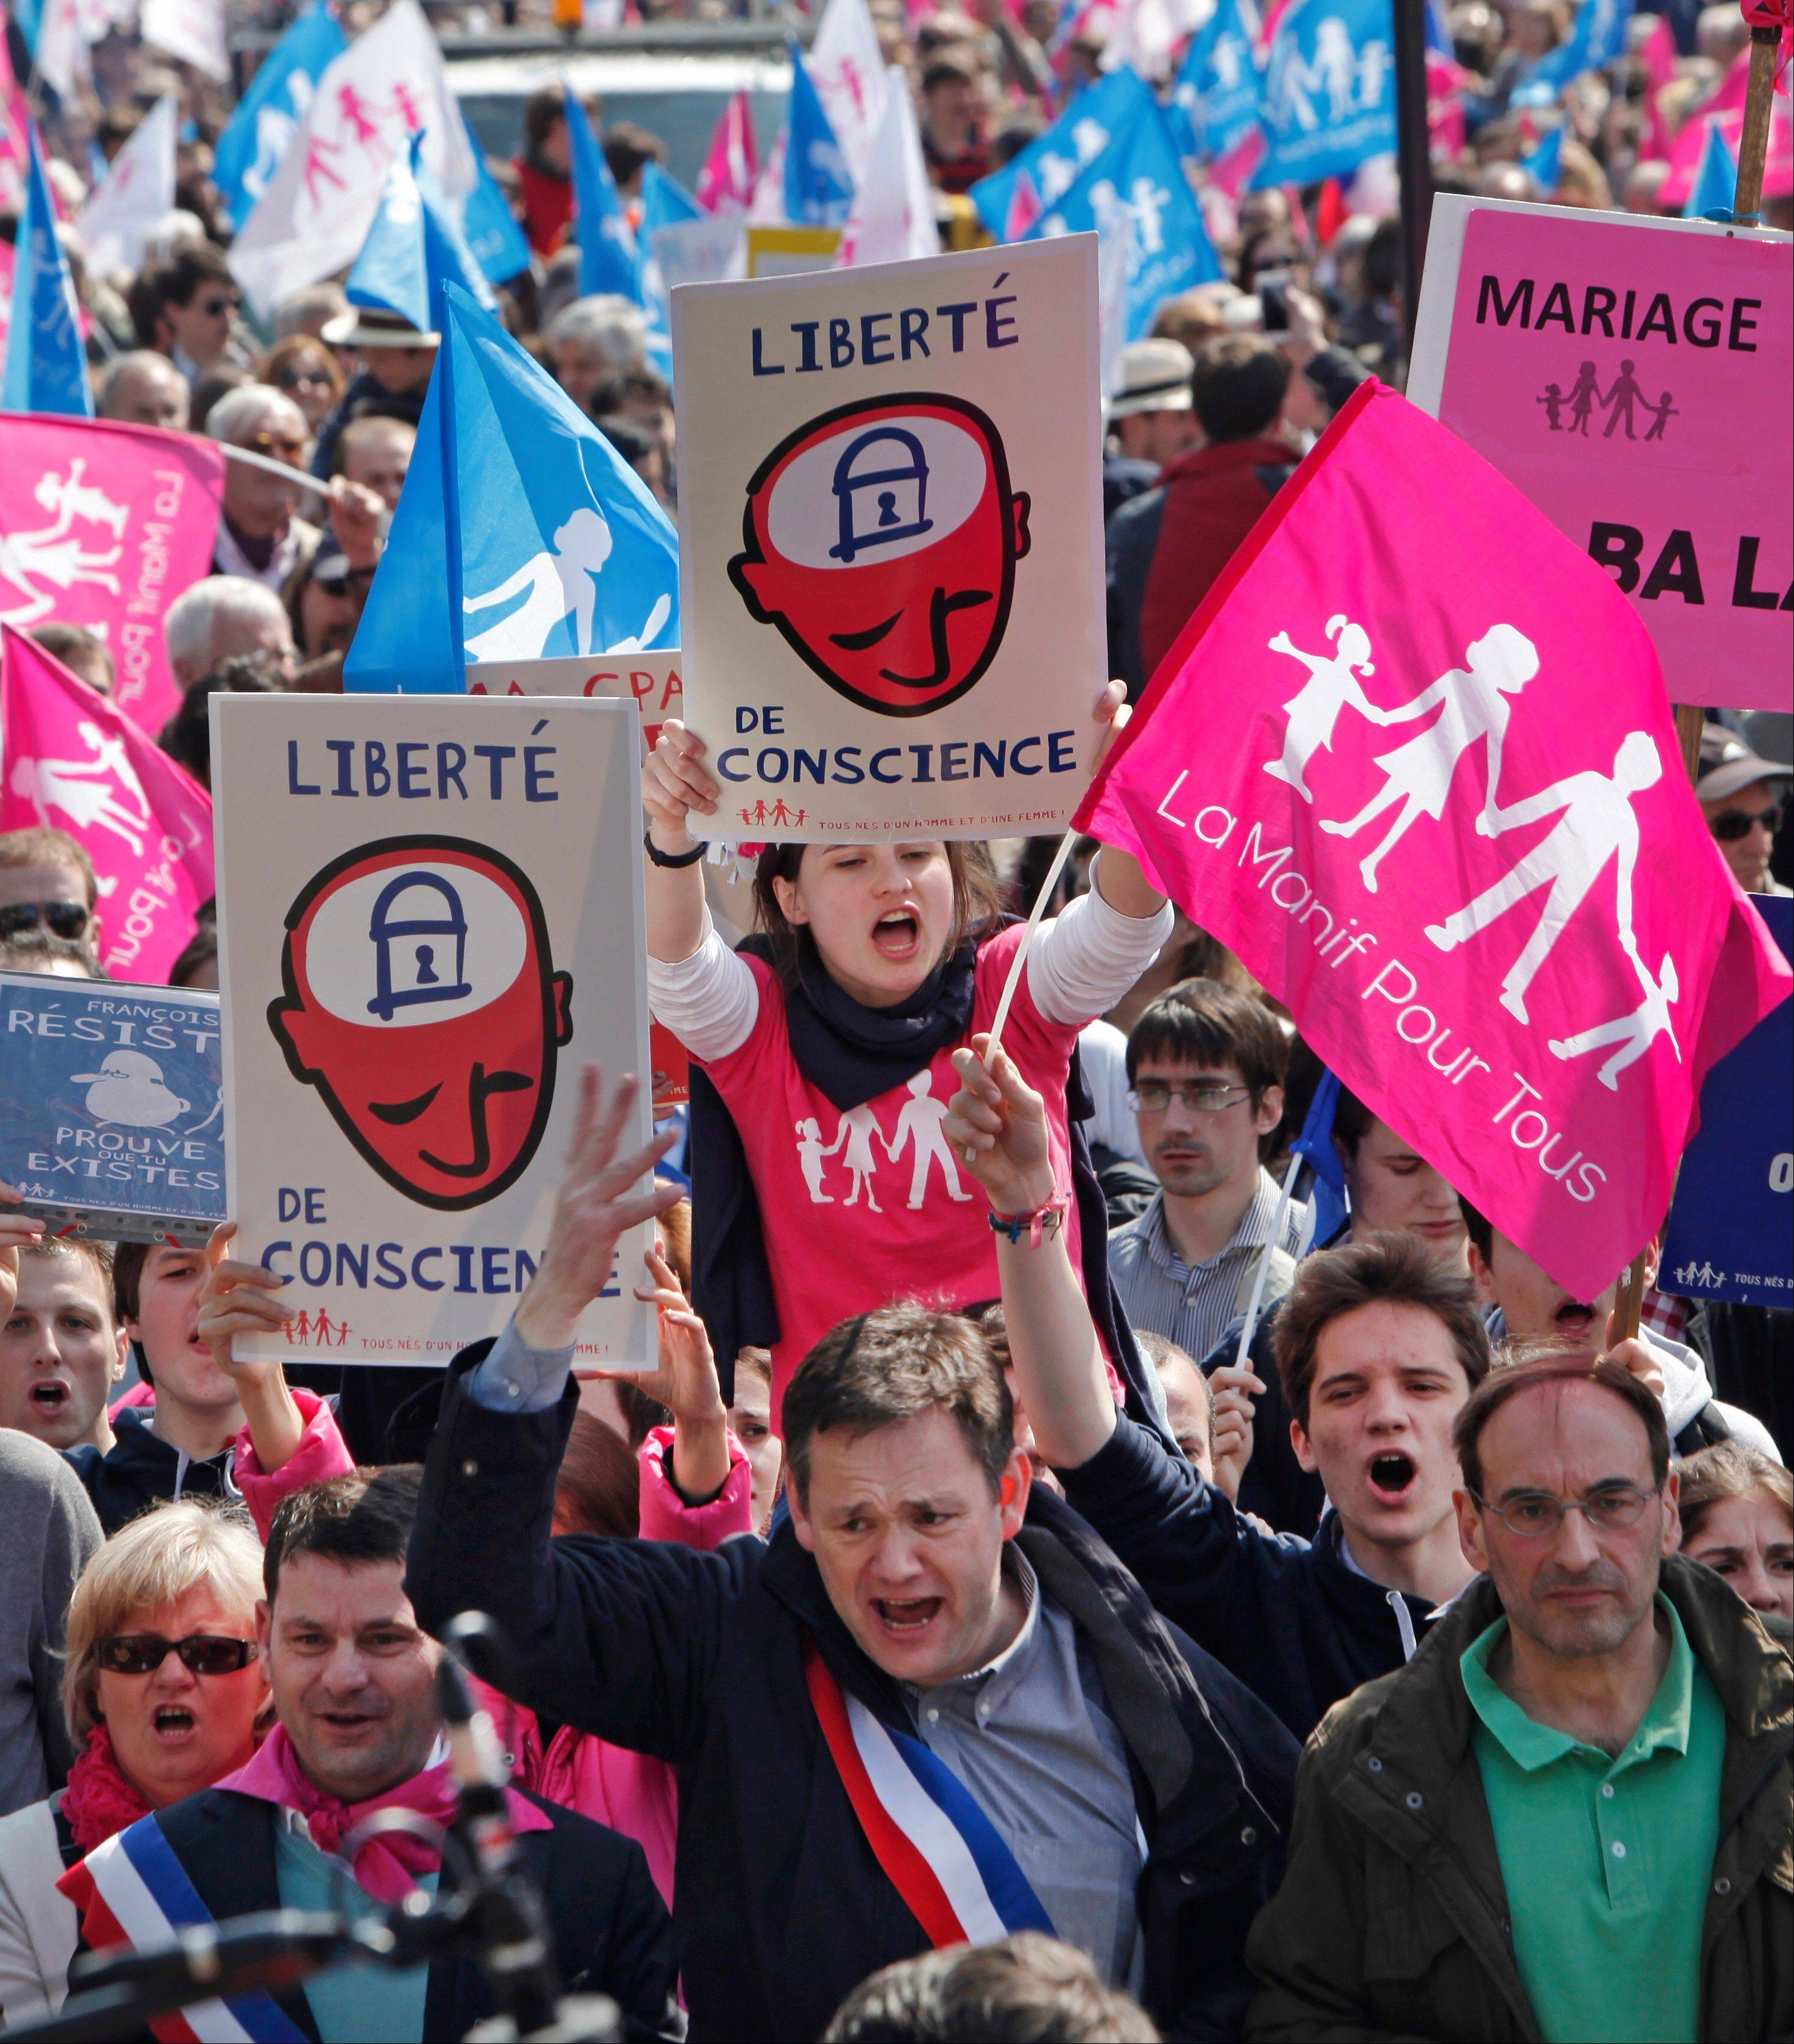 Demonstrators march during a protest Sunday of French President Francois Hollande�s social reform on gay marriage and adoption in Paris. Both houses of the French parliament have already approved the bill in a first reading. The second and final reading is expected Tuesday. Signs read: Freedom of Conscience.